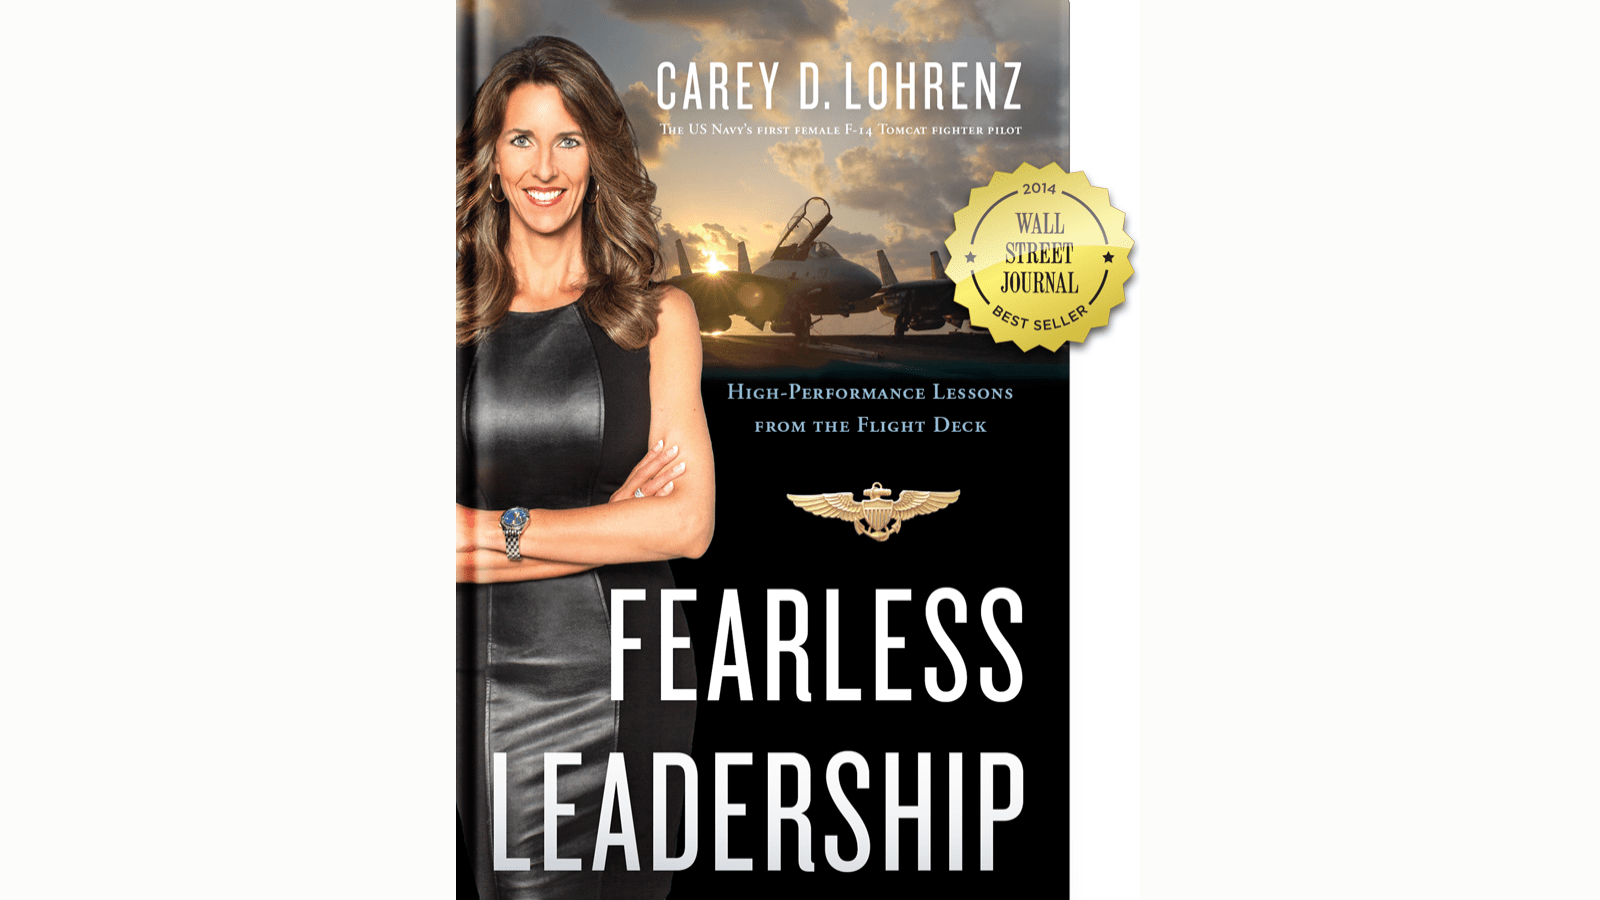 Book cover of Fearless Leadership with author and pilot Carey Lohrenz